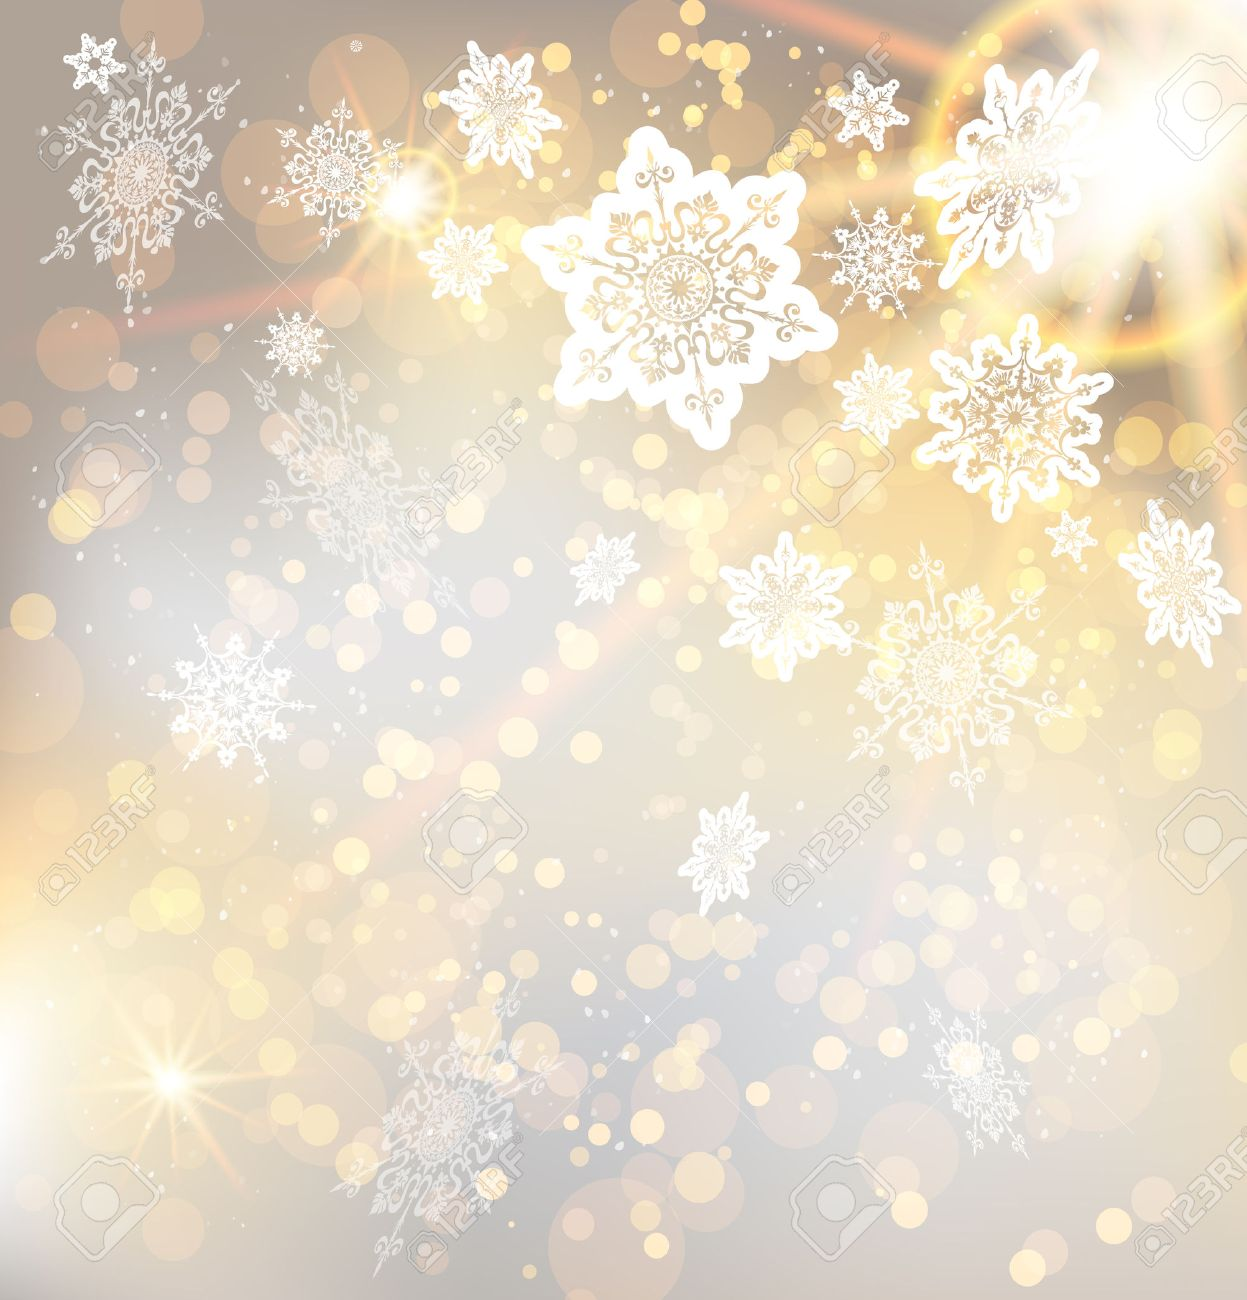 Festive Christmas Background With Snowflakes And Lights Copy